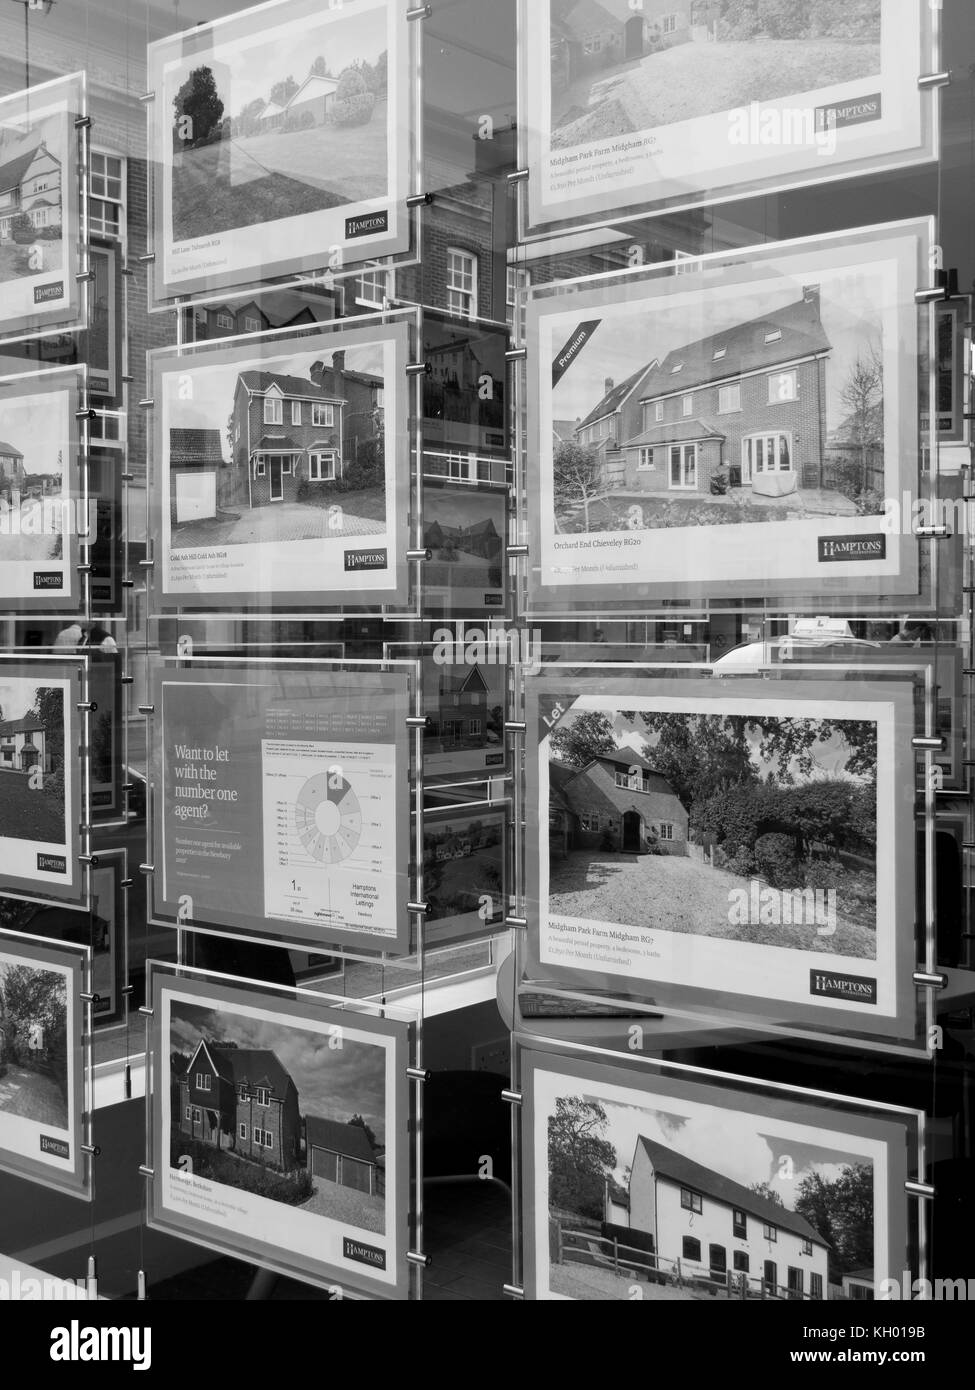 Residential properties for sale displayed in estate agents window - Stock Image